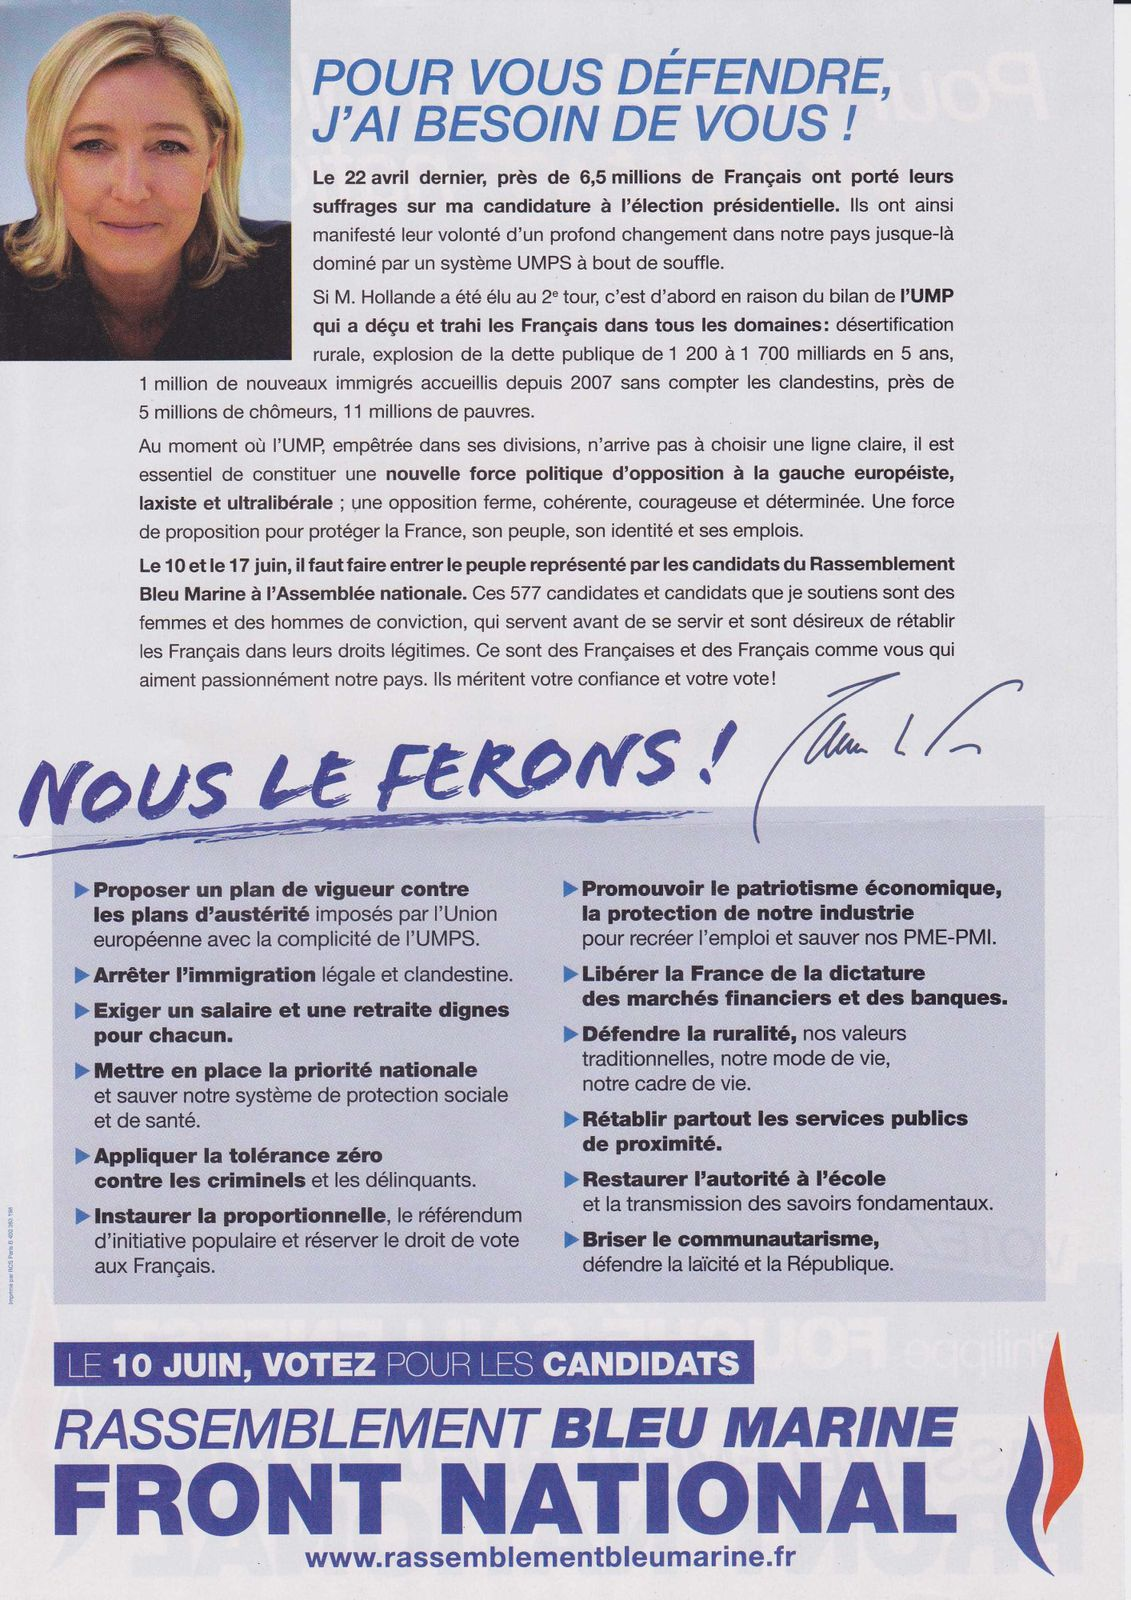 16-2012-Legislative-8eme-Circonscription-Seine-Maritime-FN.jpg